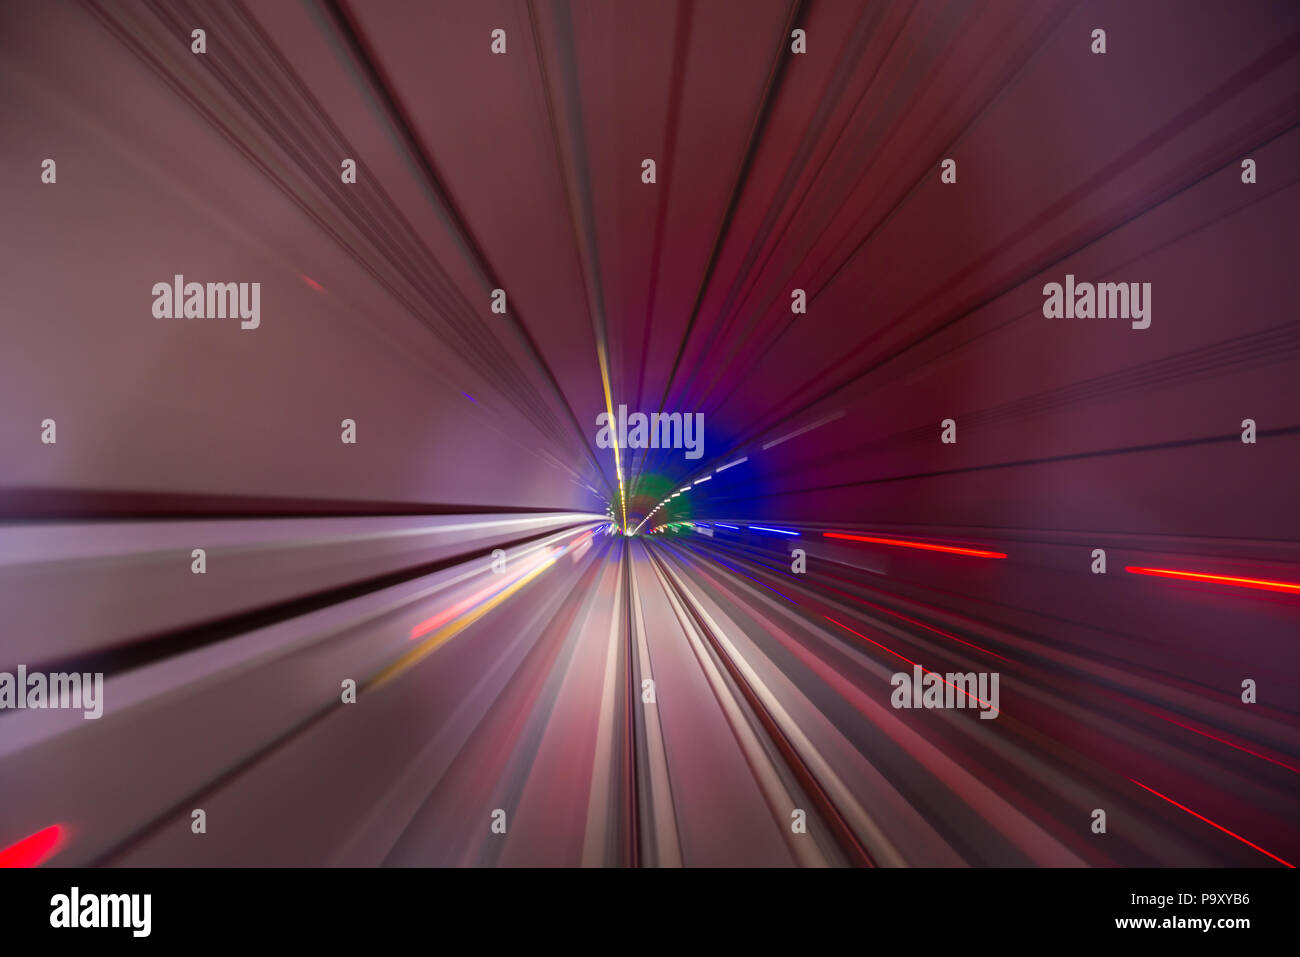 Speed blurred motion of train or subway train moving inside tunnel. Stock Photo